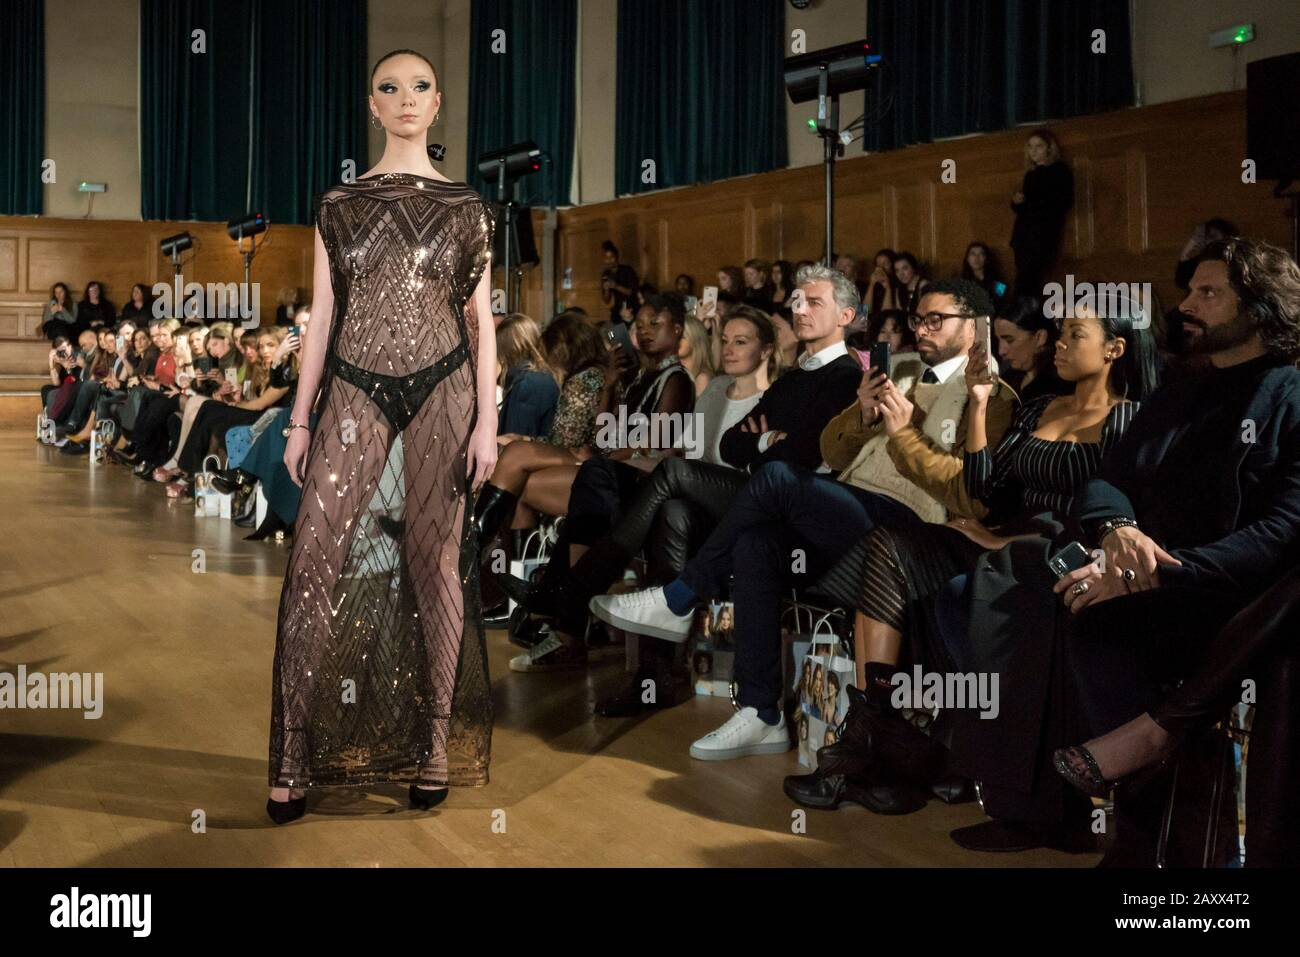 London Uk 13 February 2020 A Model Wears A Creation By Chanel Joan Elkayam At Her Aw20 Showcase At Cecil Sharp House In Camden During London Fashion Week Aw20 Chanel Joan Elkayam